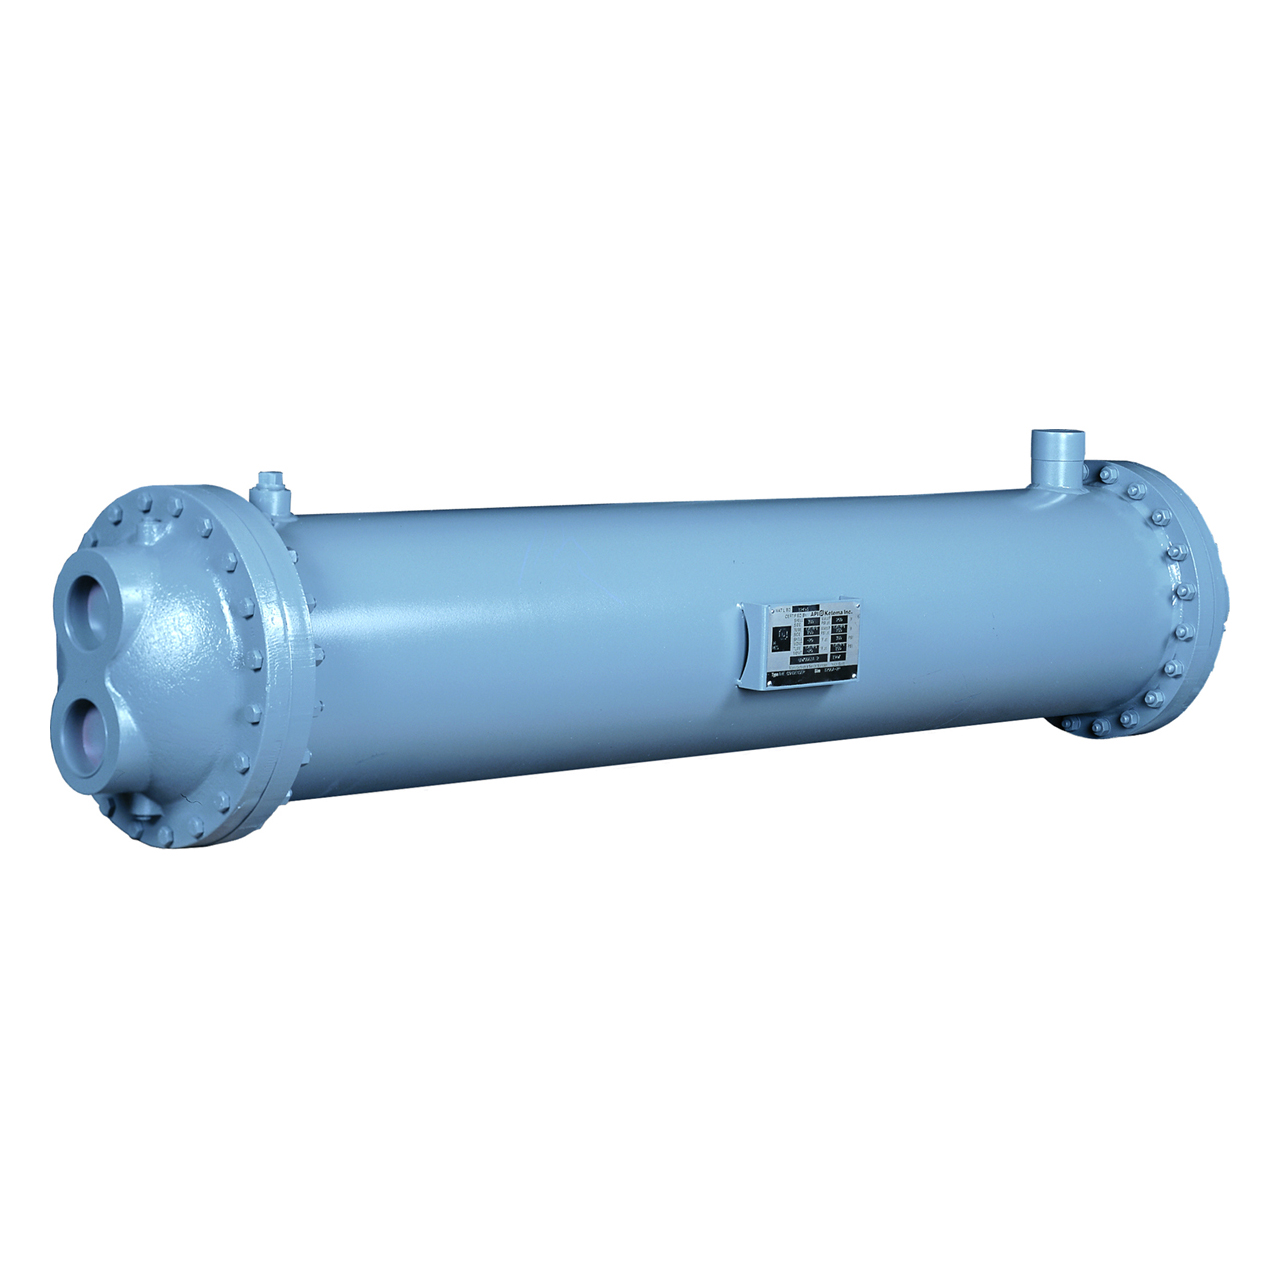 carrier-P701-water-cooled-condenser